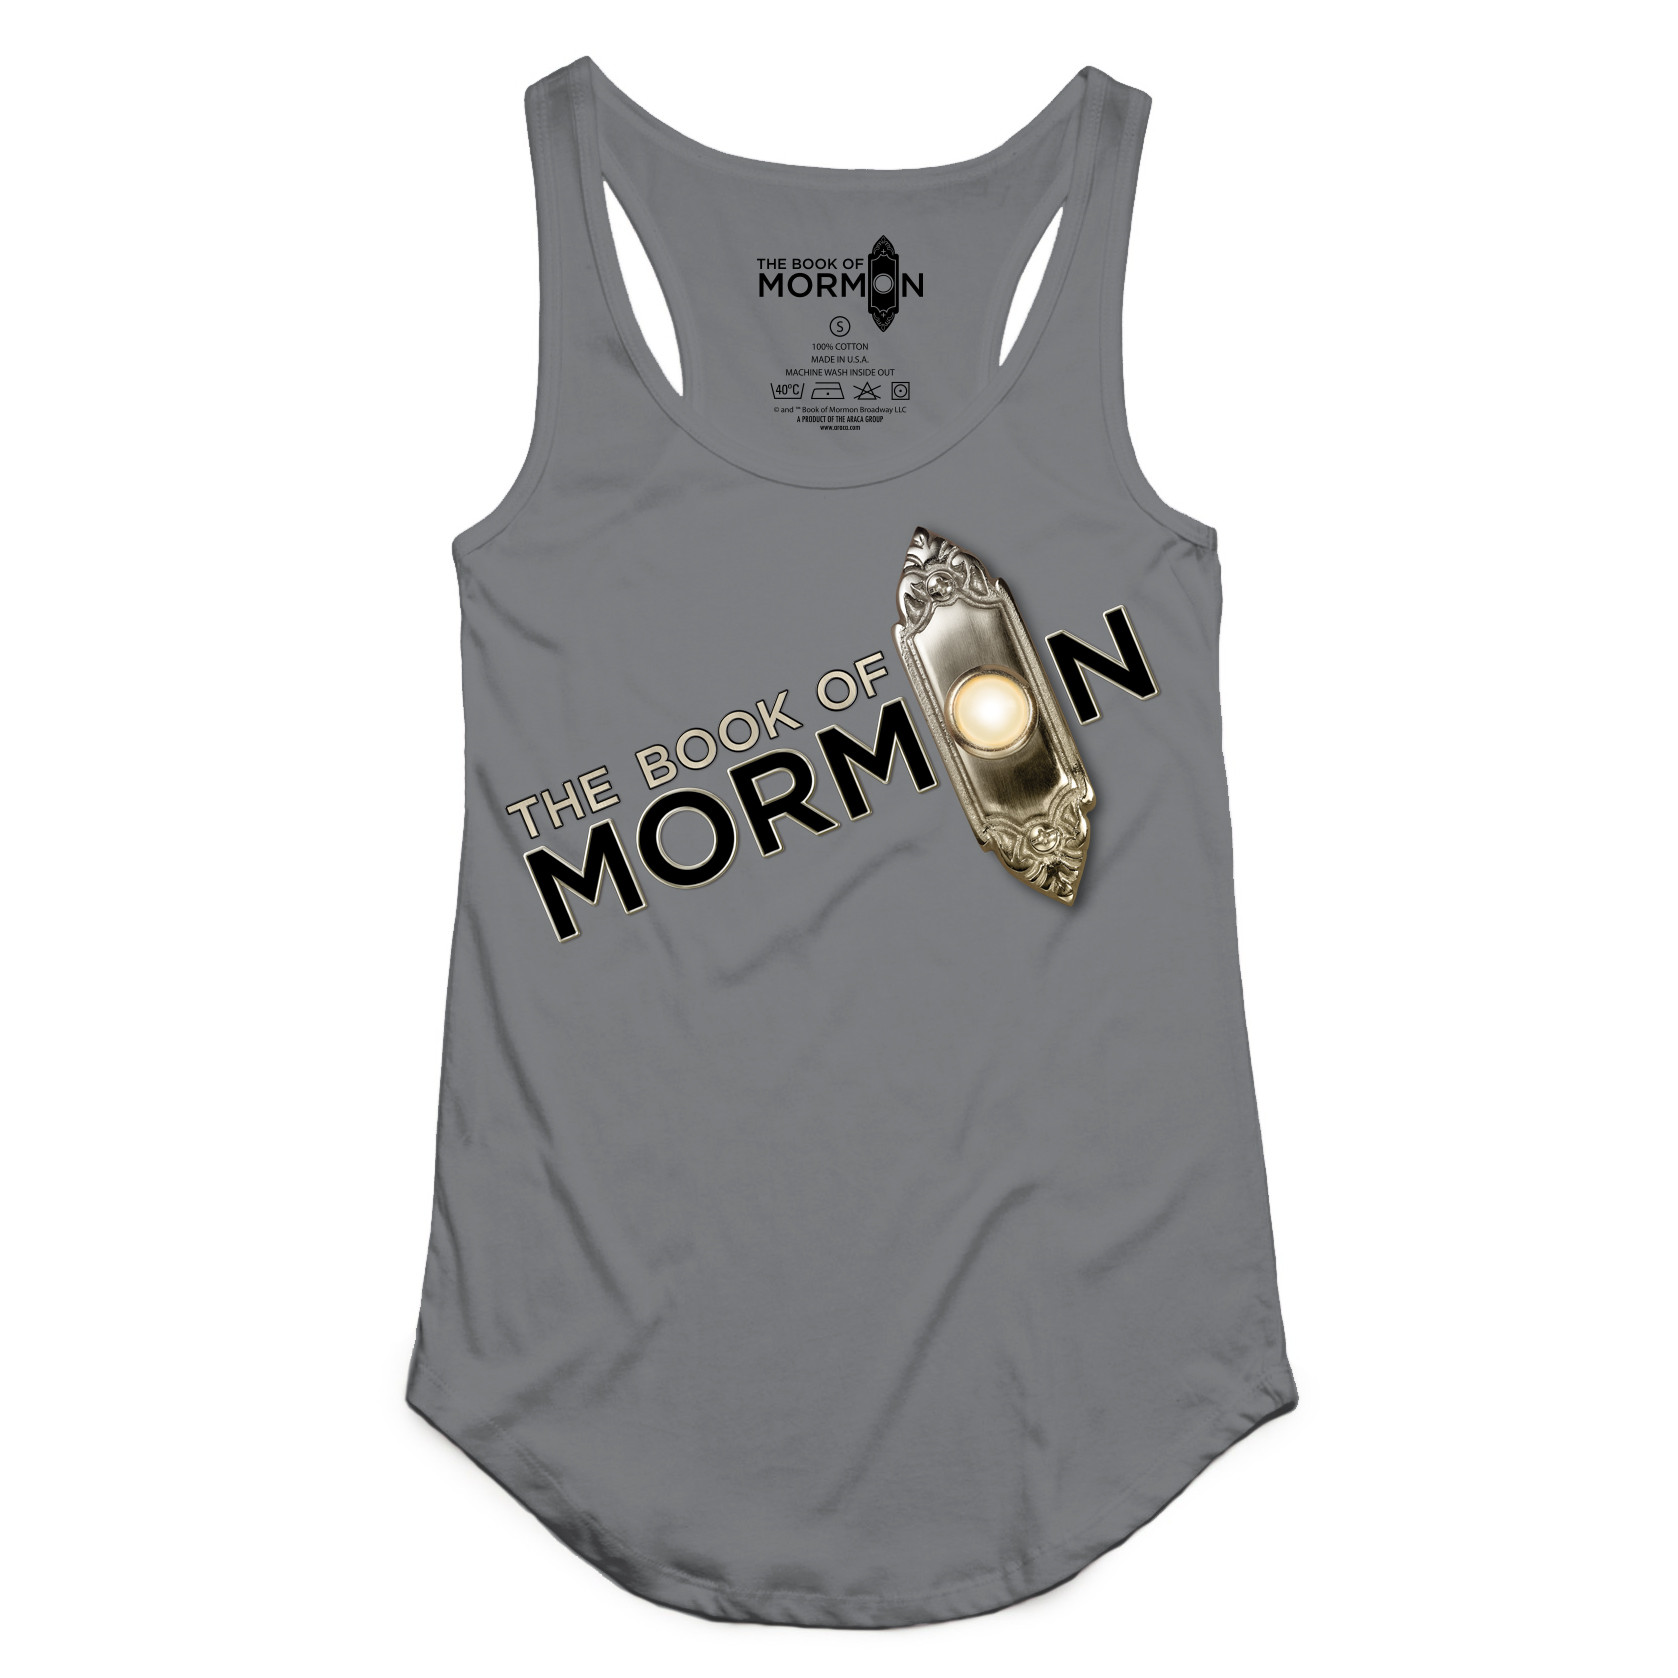 Book of Mormon - Slant Logo Tank